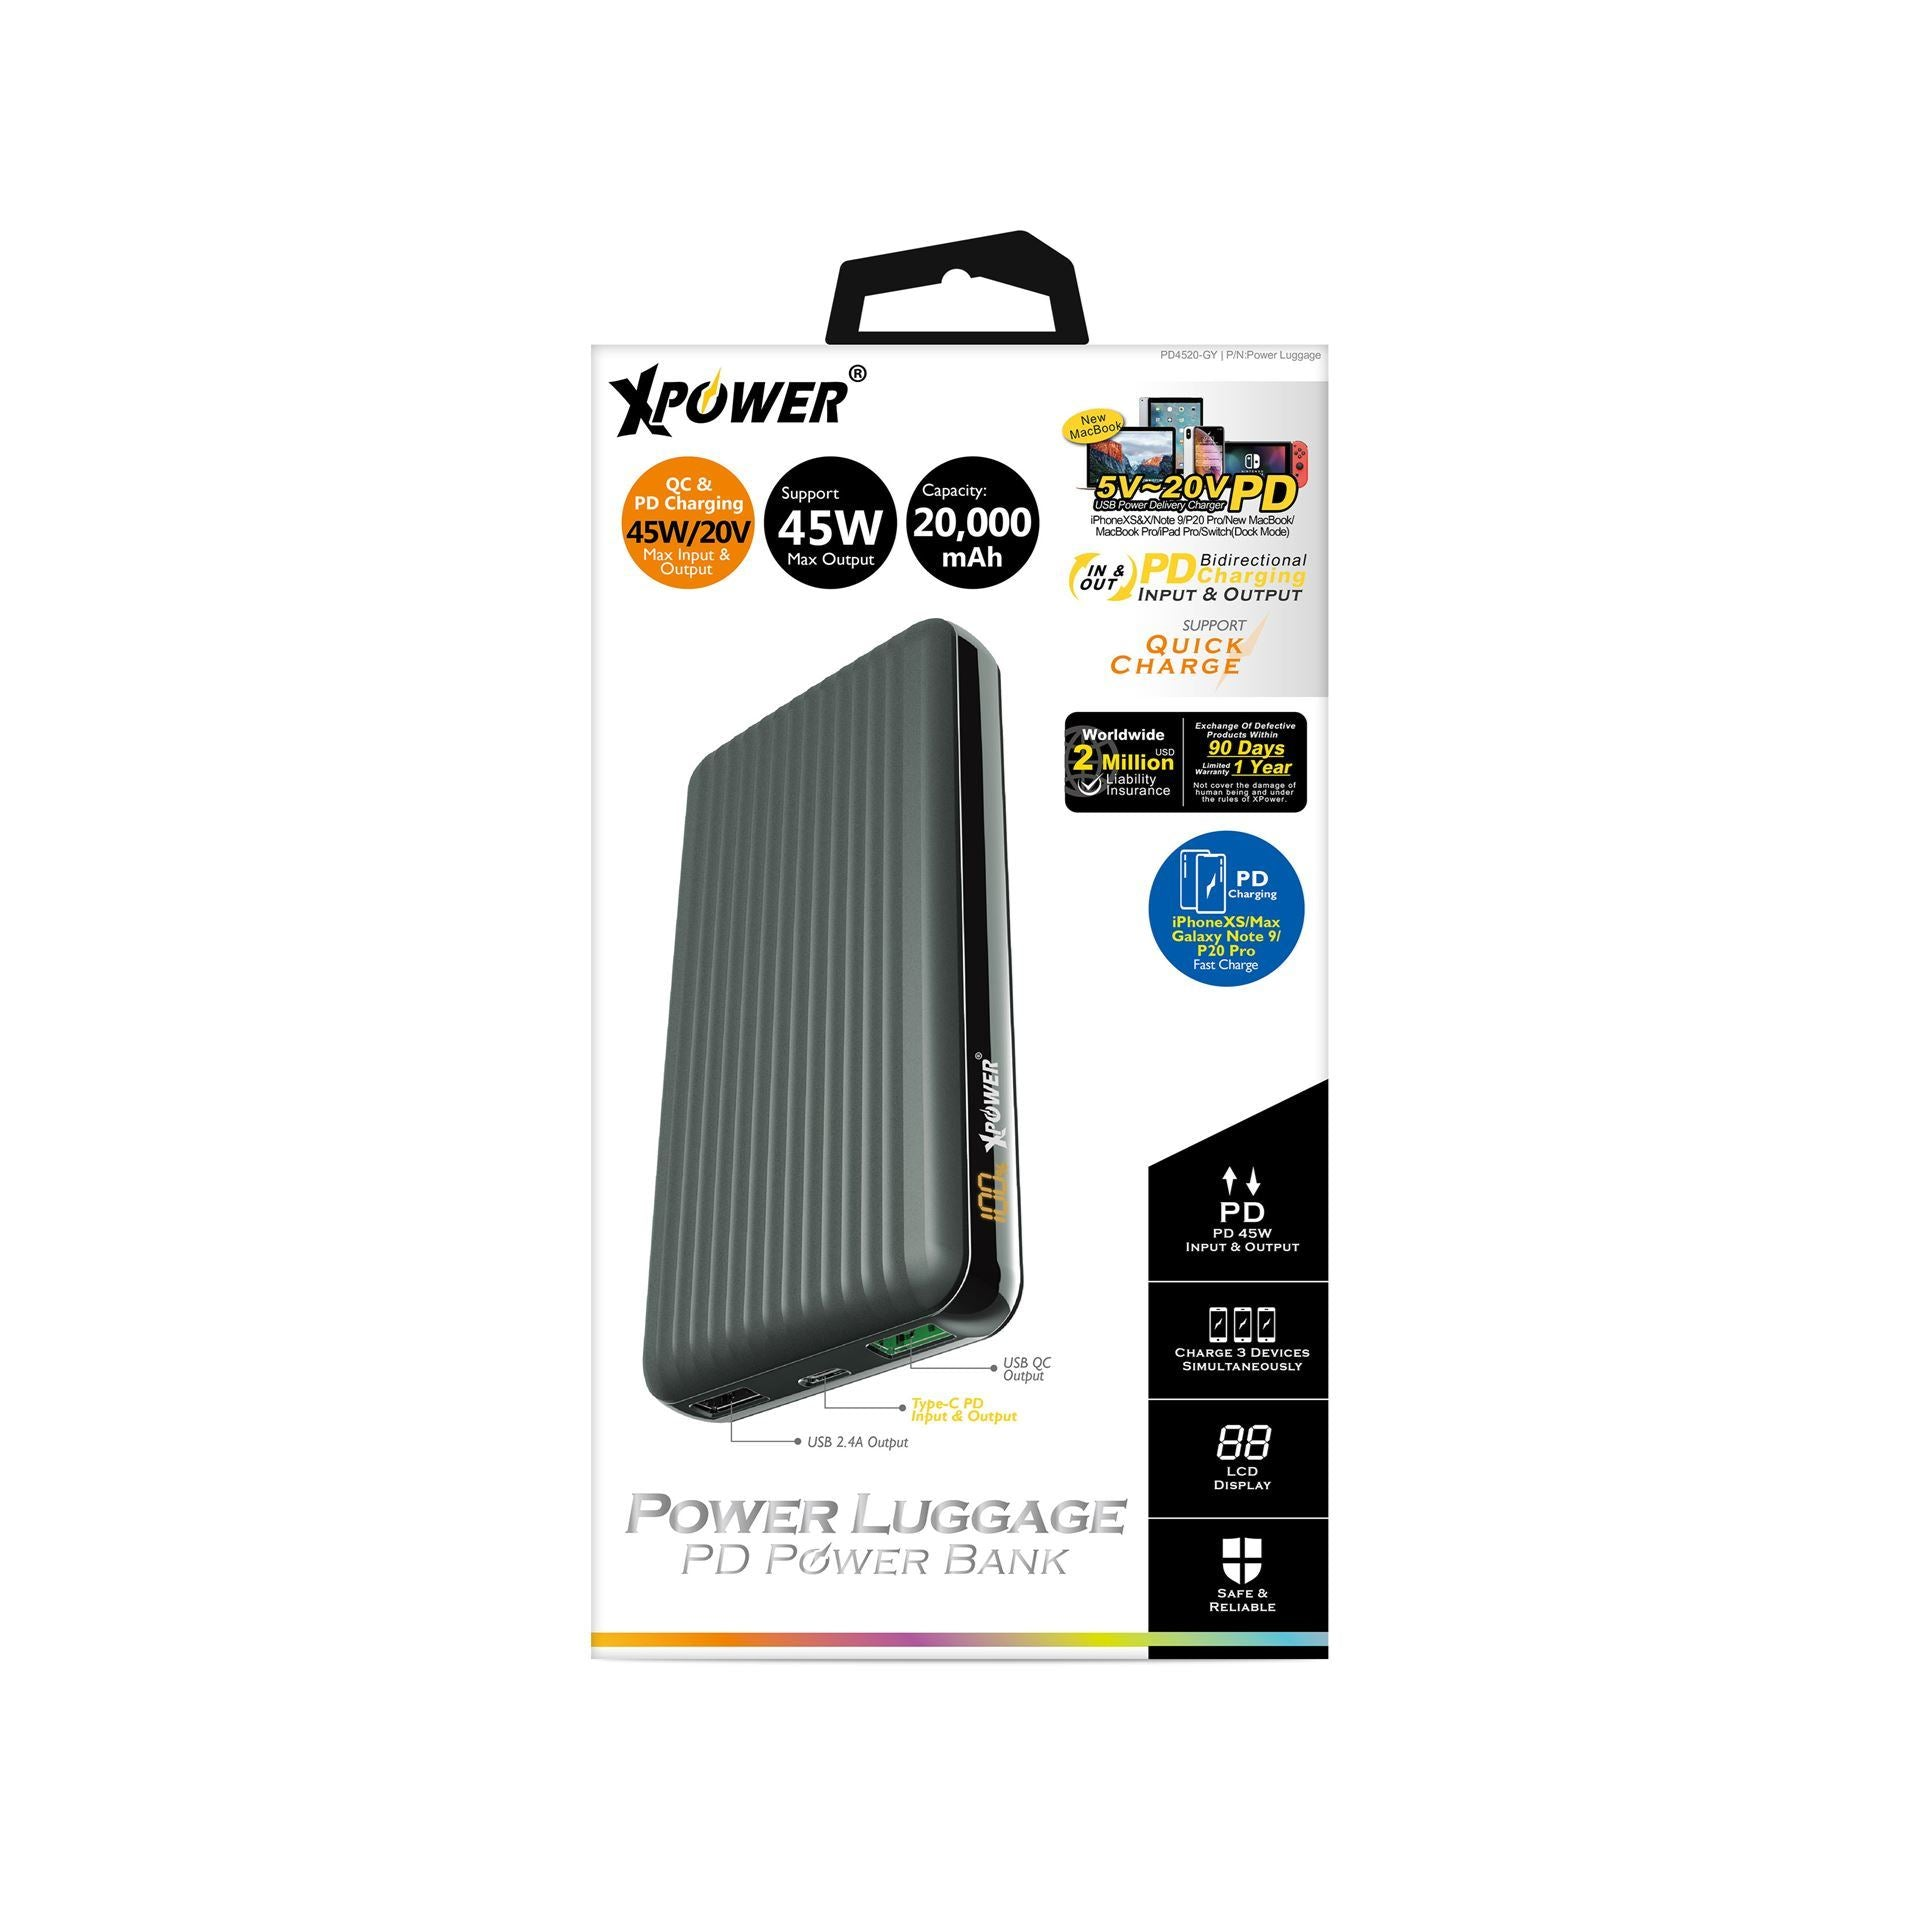 XPOWER PD4520 20000mAh 45W PD LUGGAGE POWER BANK GREY